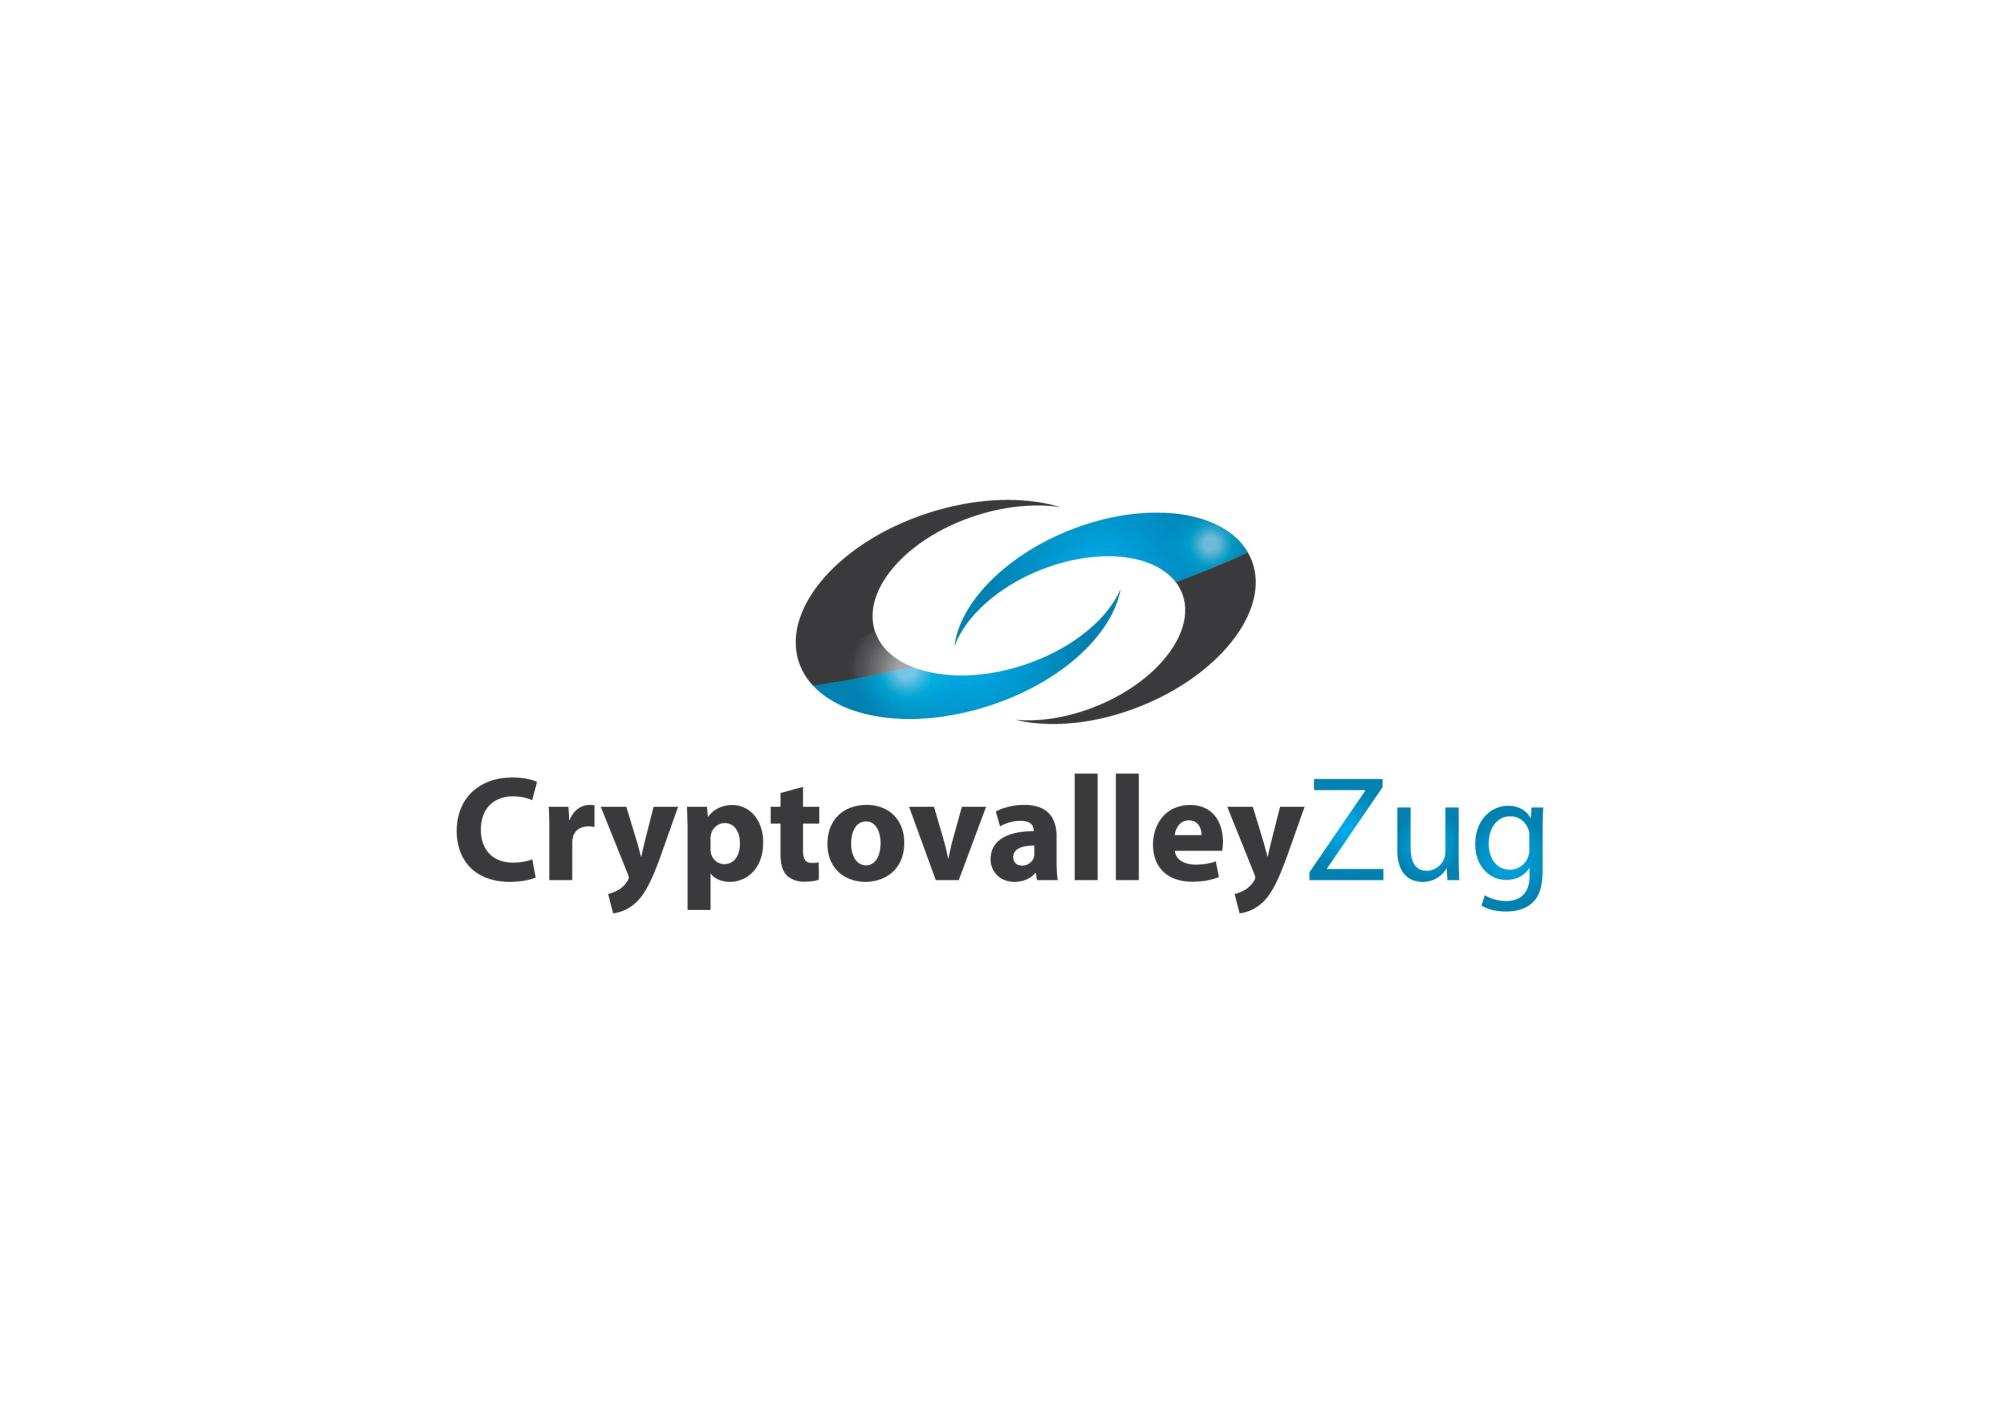 cryptovalley, zug, bitcoin